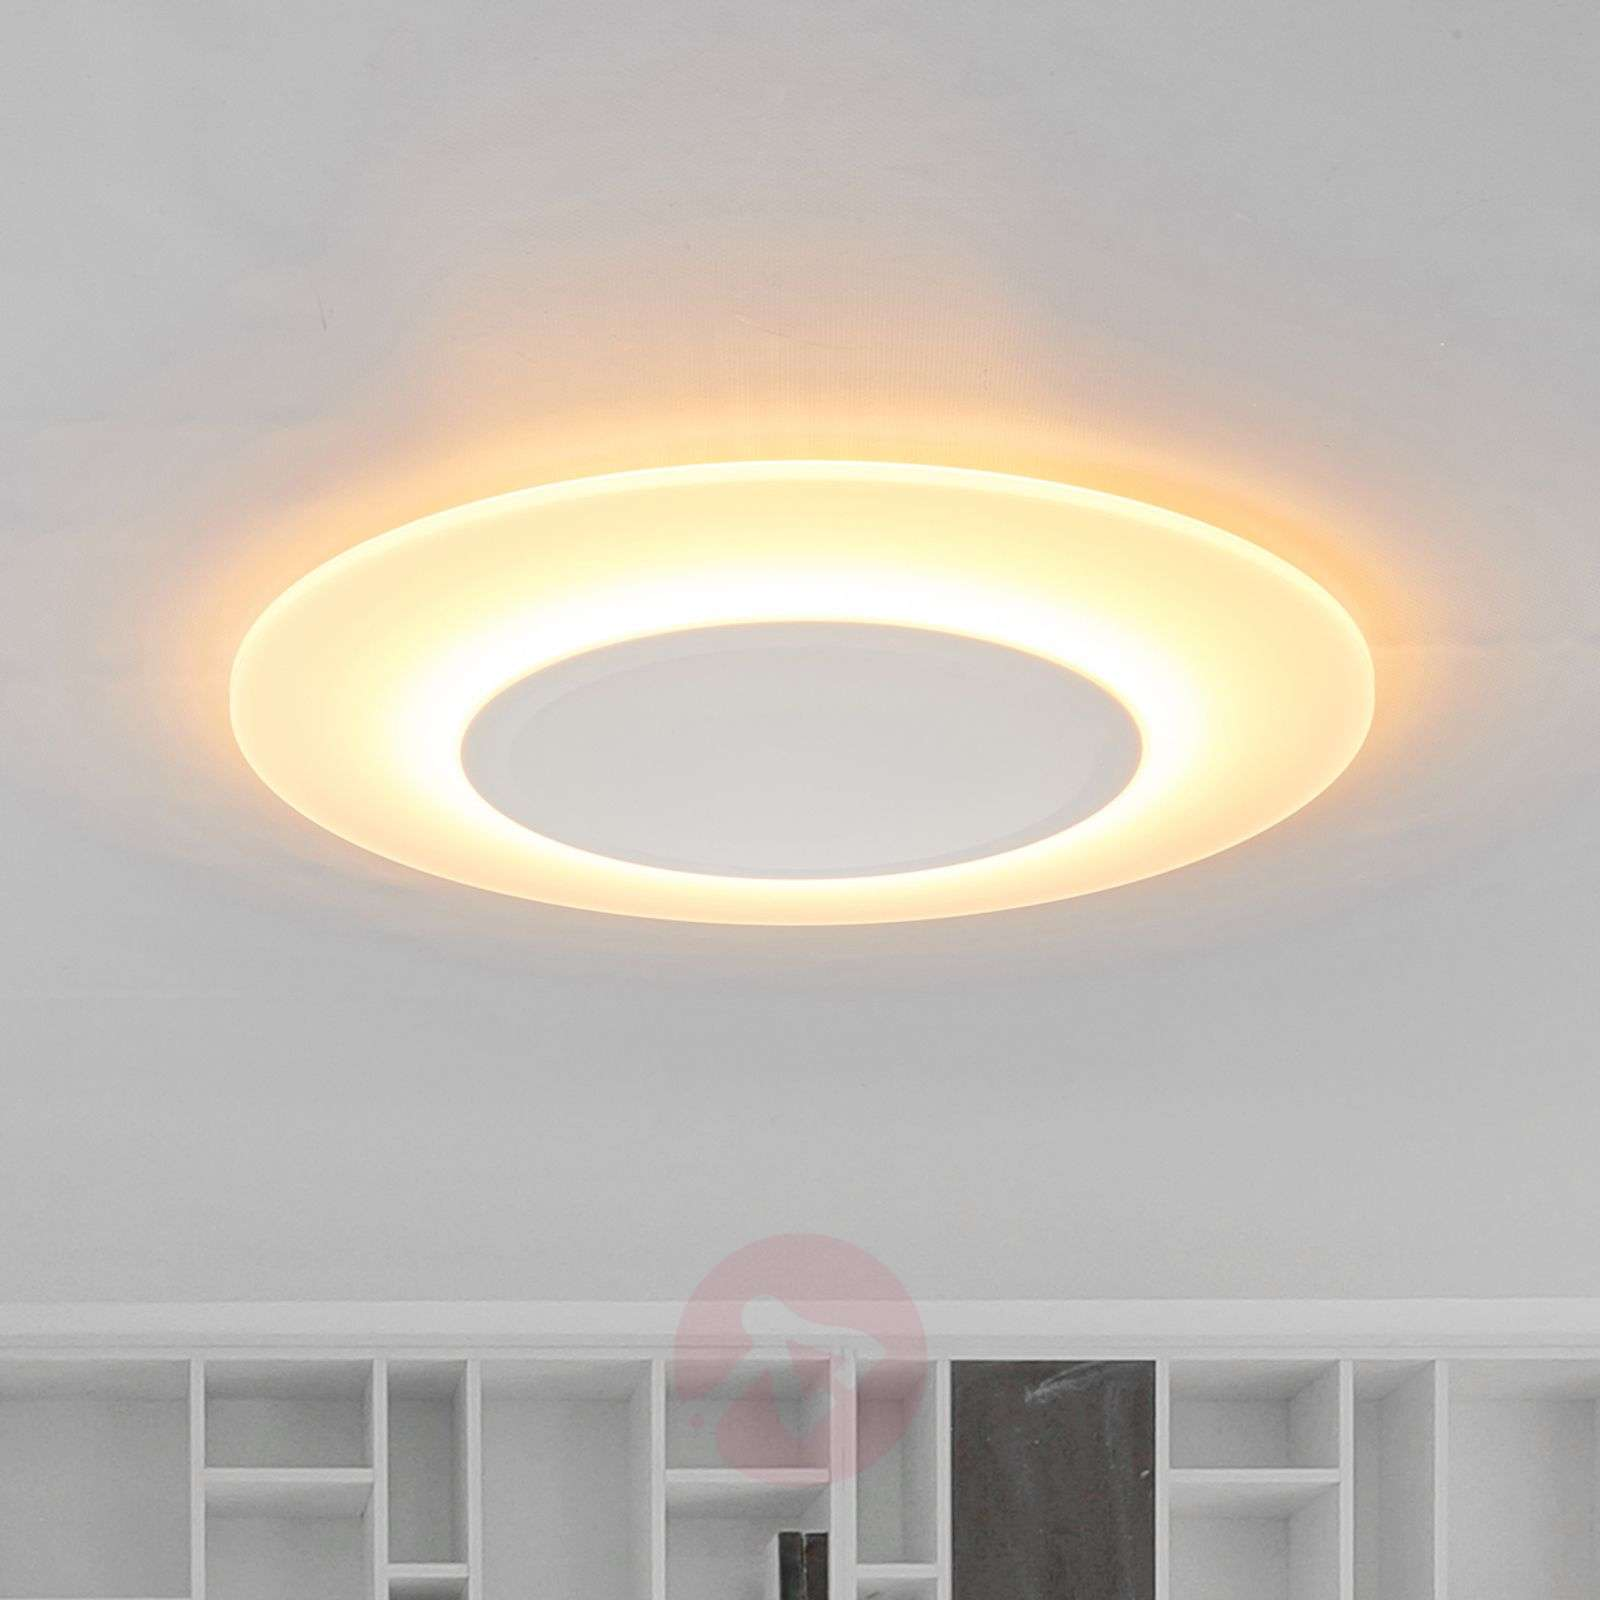 Plafoniere A Led Per Bagno Philips : Acquista sottile plafoniera led flat 1.200 lumen lampade.it